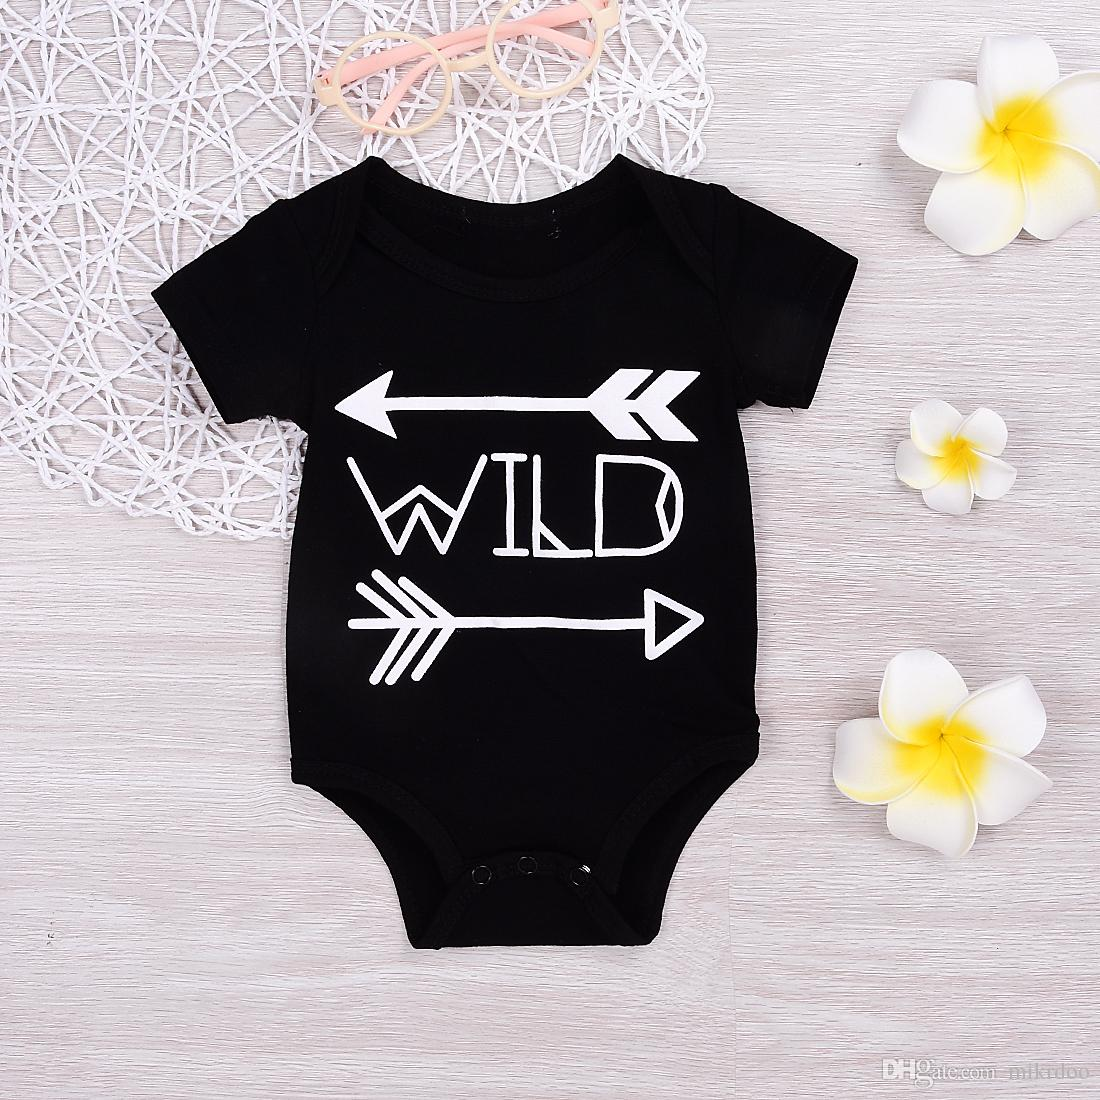 609afae1abf 2019 Mikrdoo Baby Boy Girl Fashion Rompers 2017 Cotton Black Wild Letters  Printed Body Suit Newborn Infant Arrows Romper Cool Jumpsuit For 0 18M From  ...